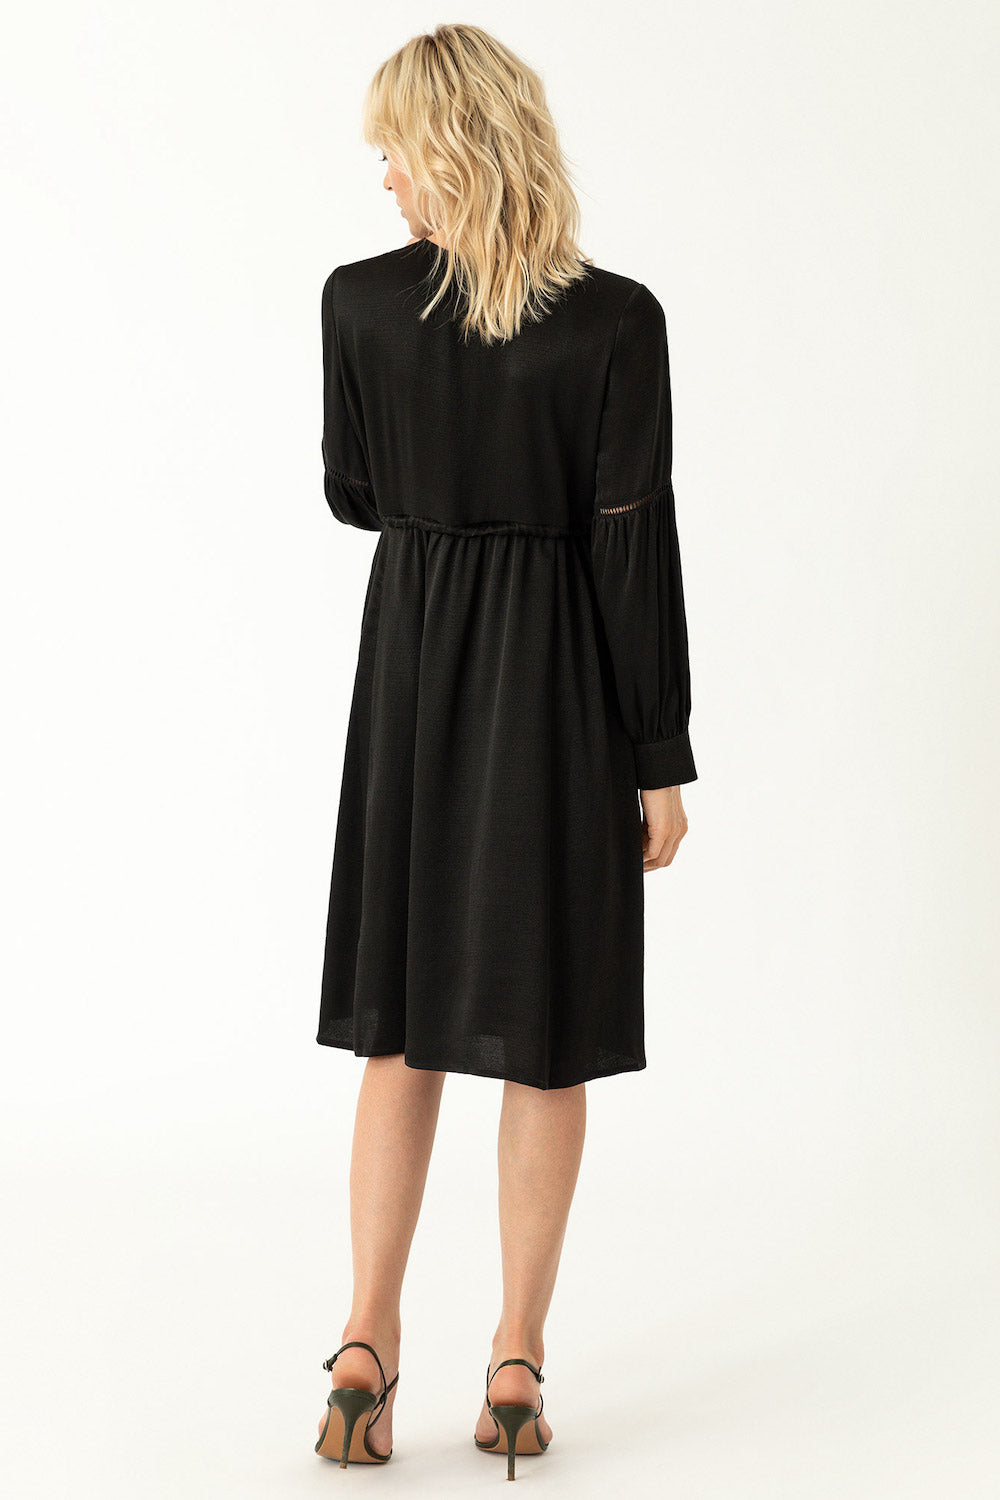 Ivy & Oak Maternity Tunic Dress Black